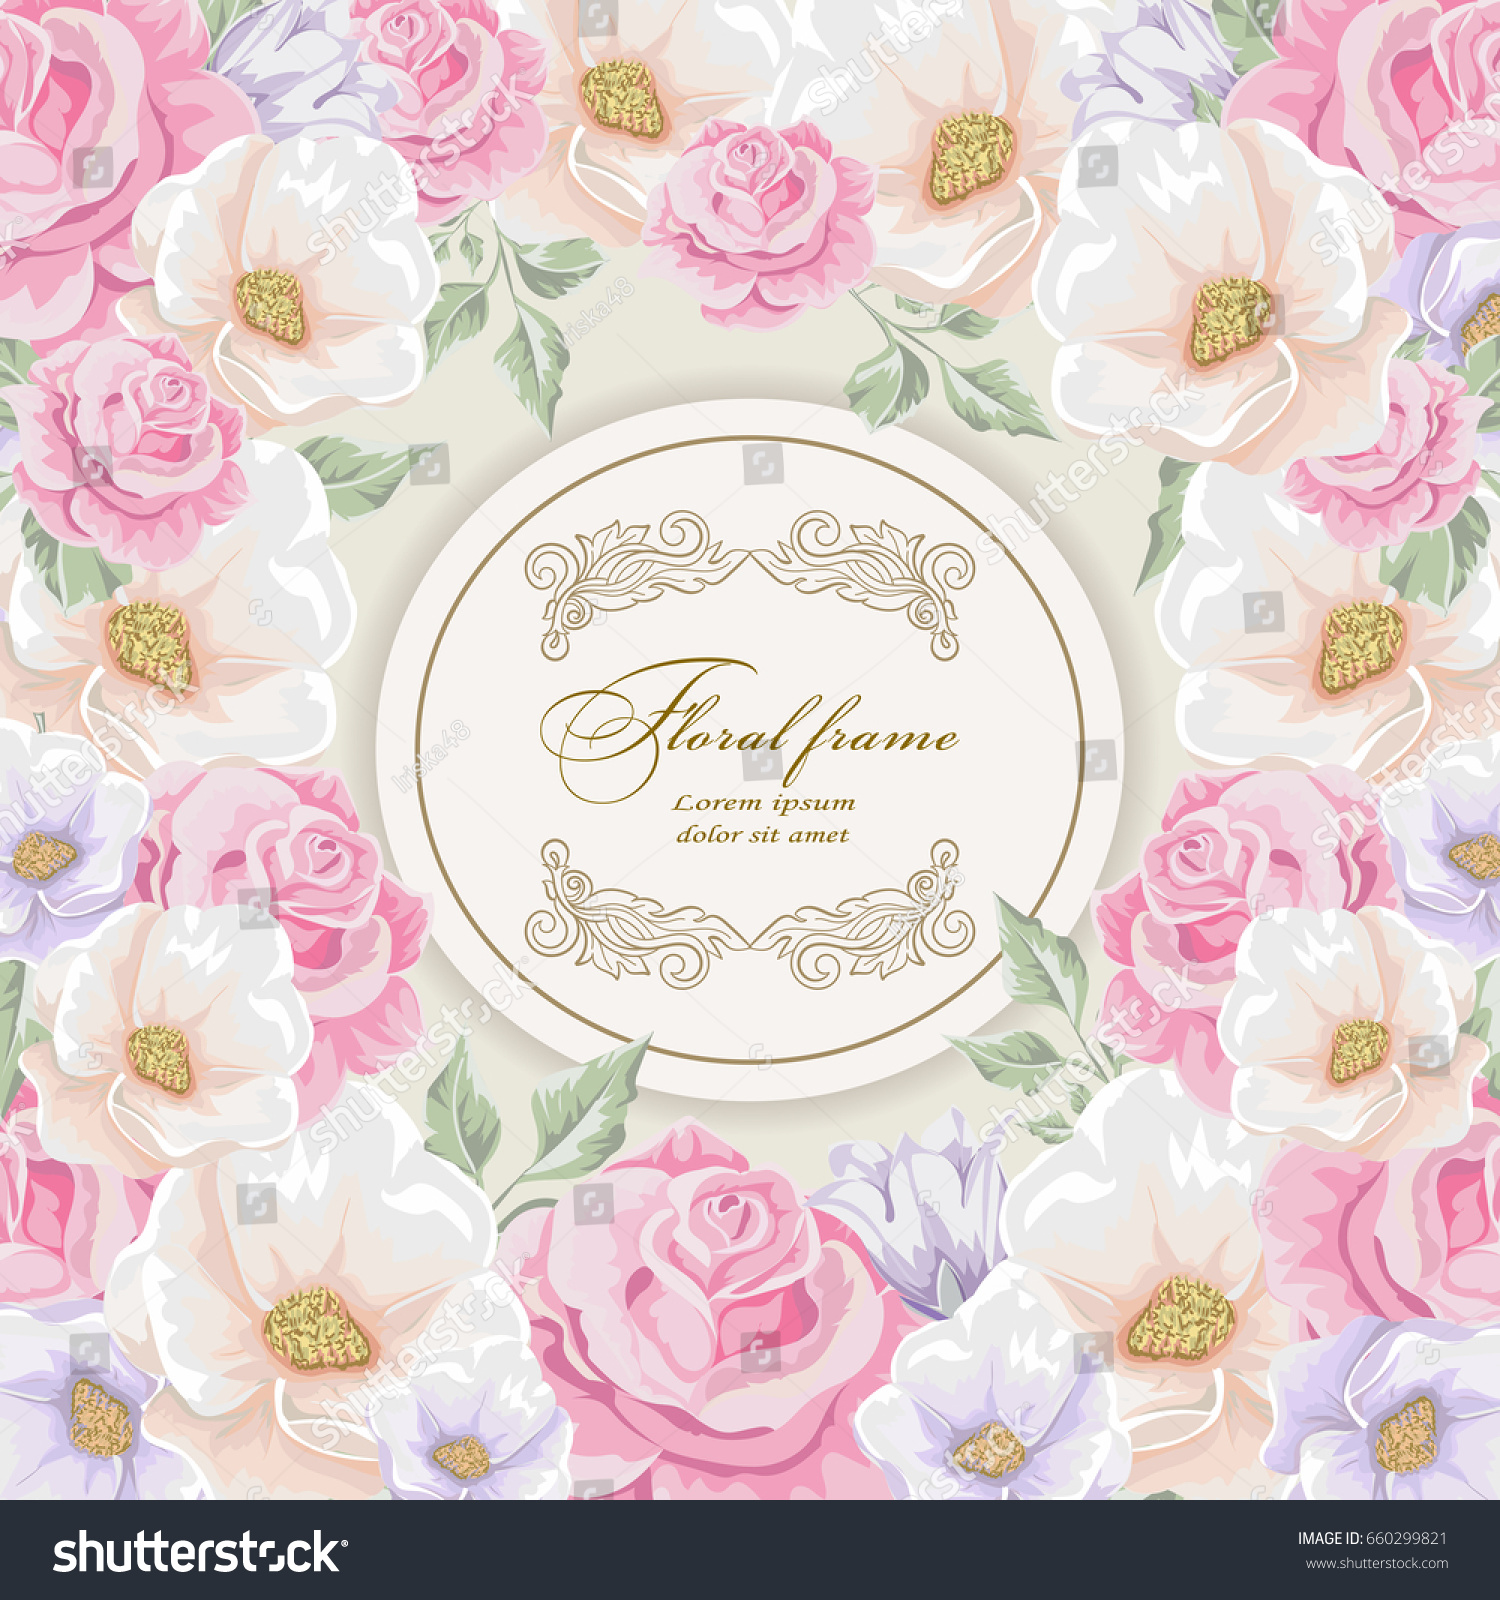 Greeting Card Bouquet Flowers Wedding Birthday Stock Vector Royalty